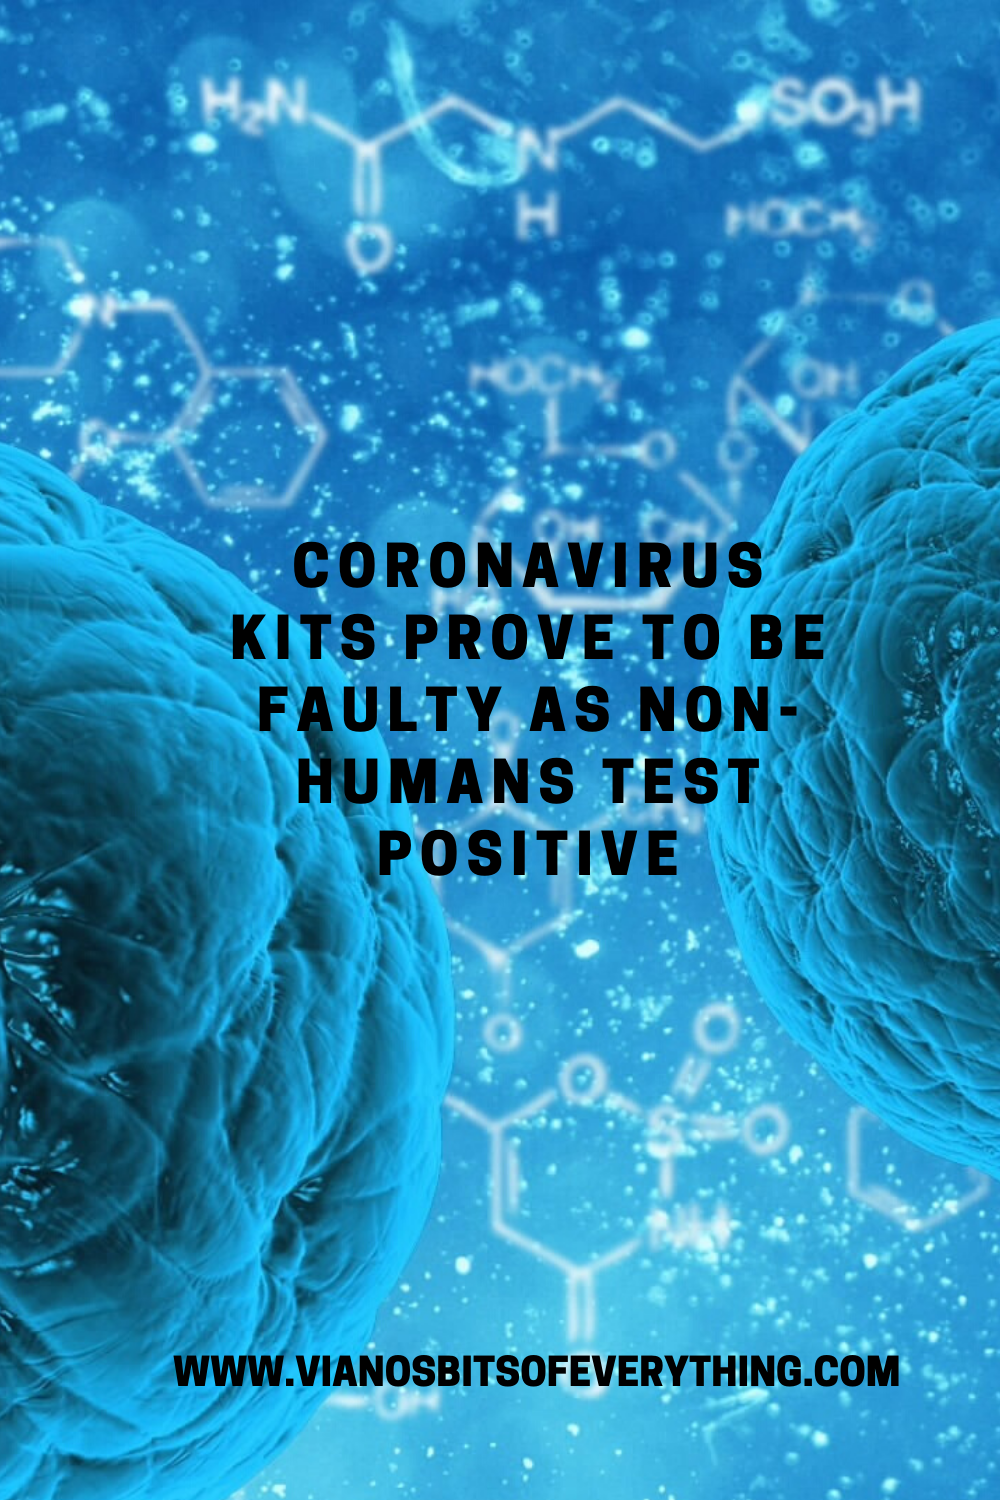 Coronavirus Kits Prove To Be Faulty As Non-Humans Test Positive